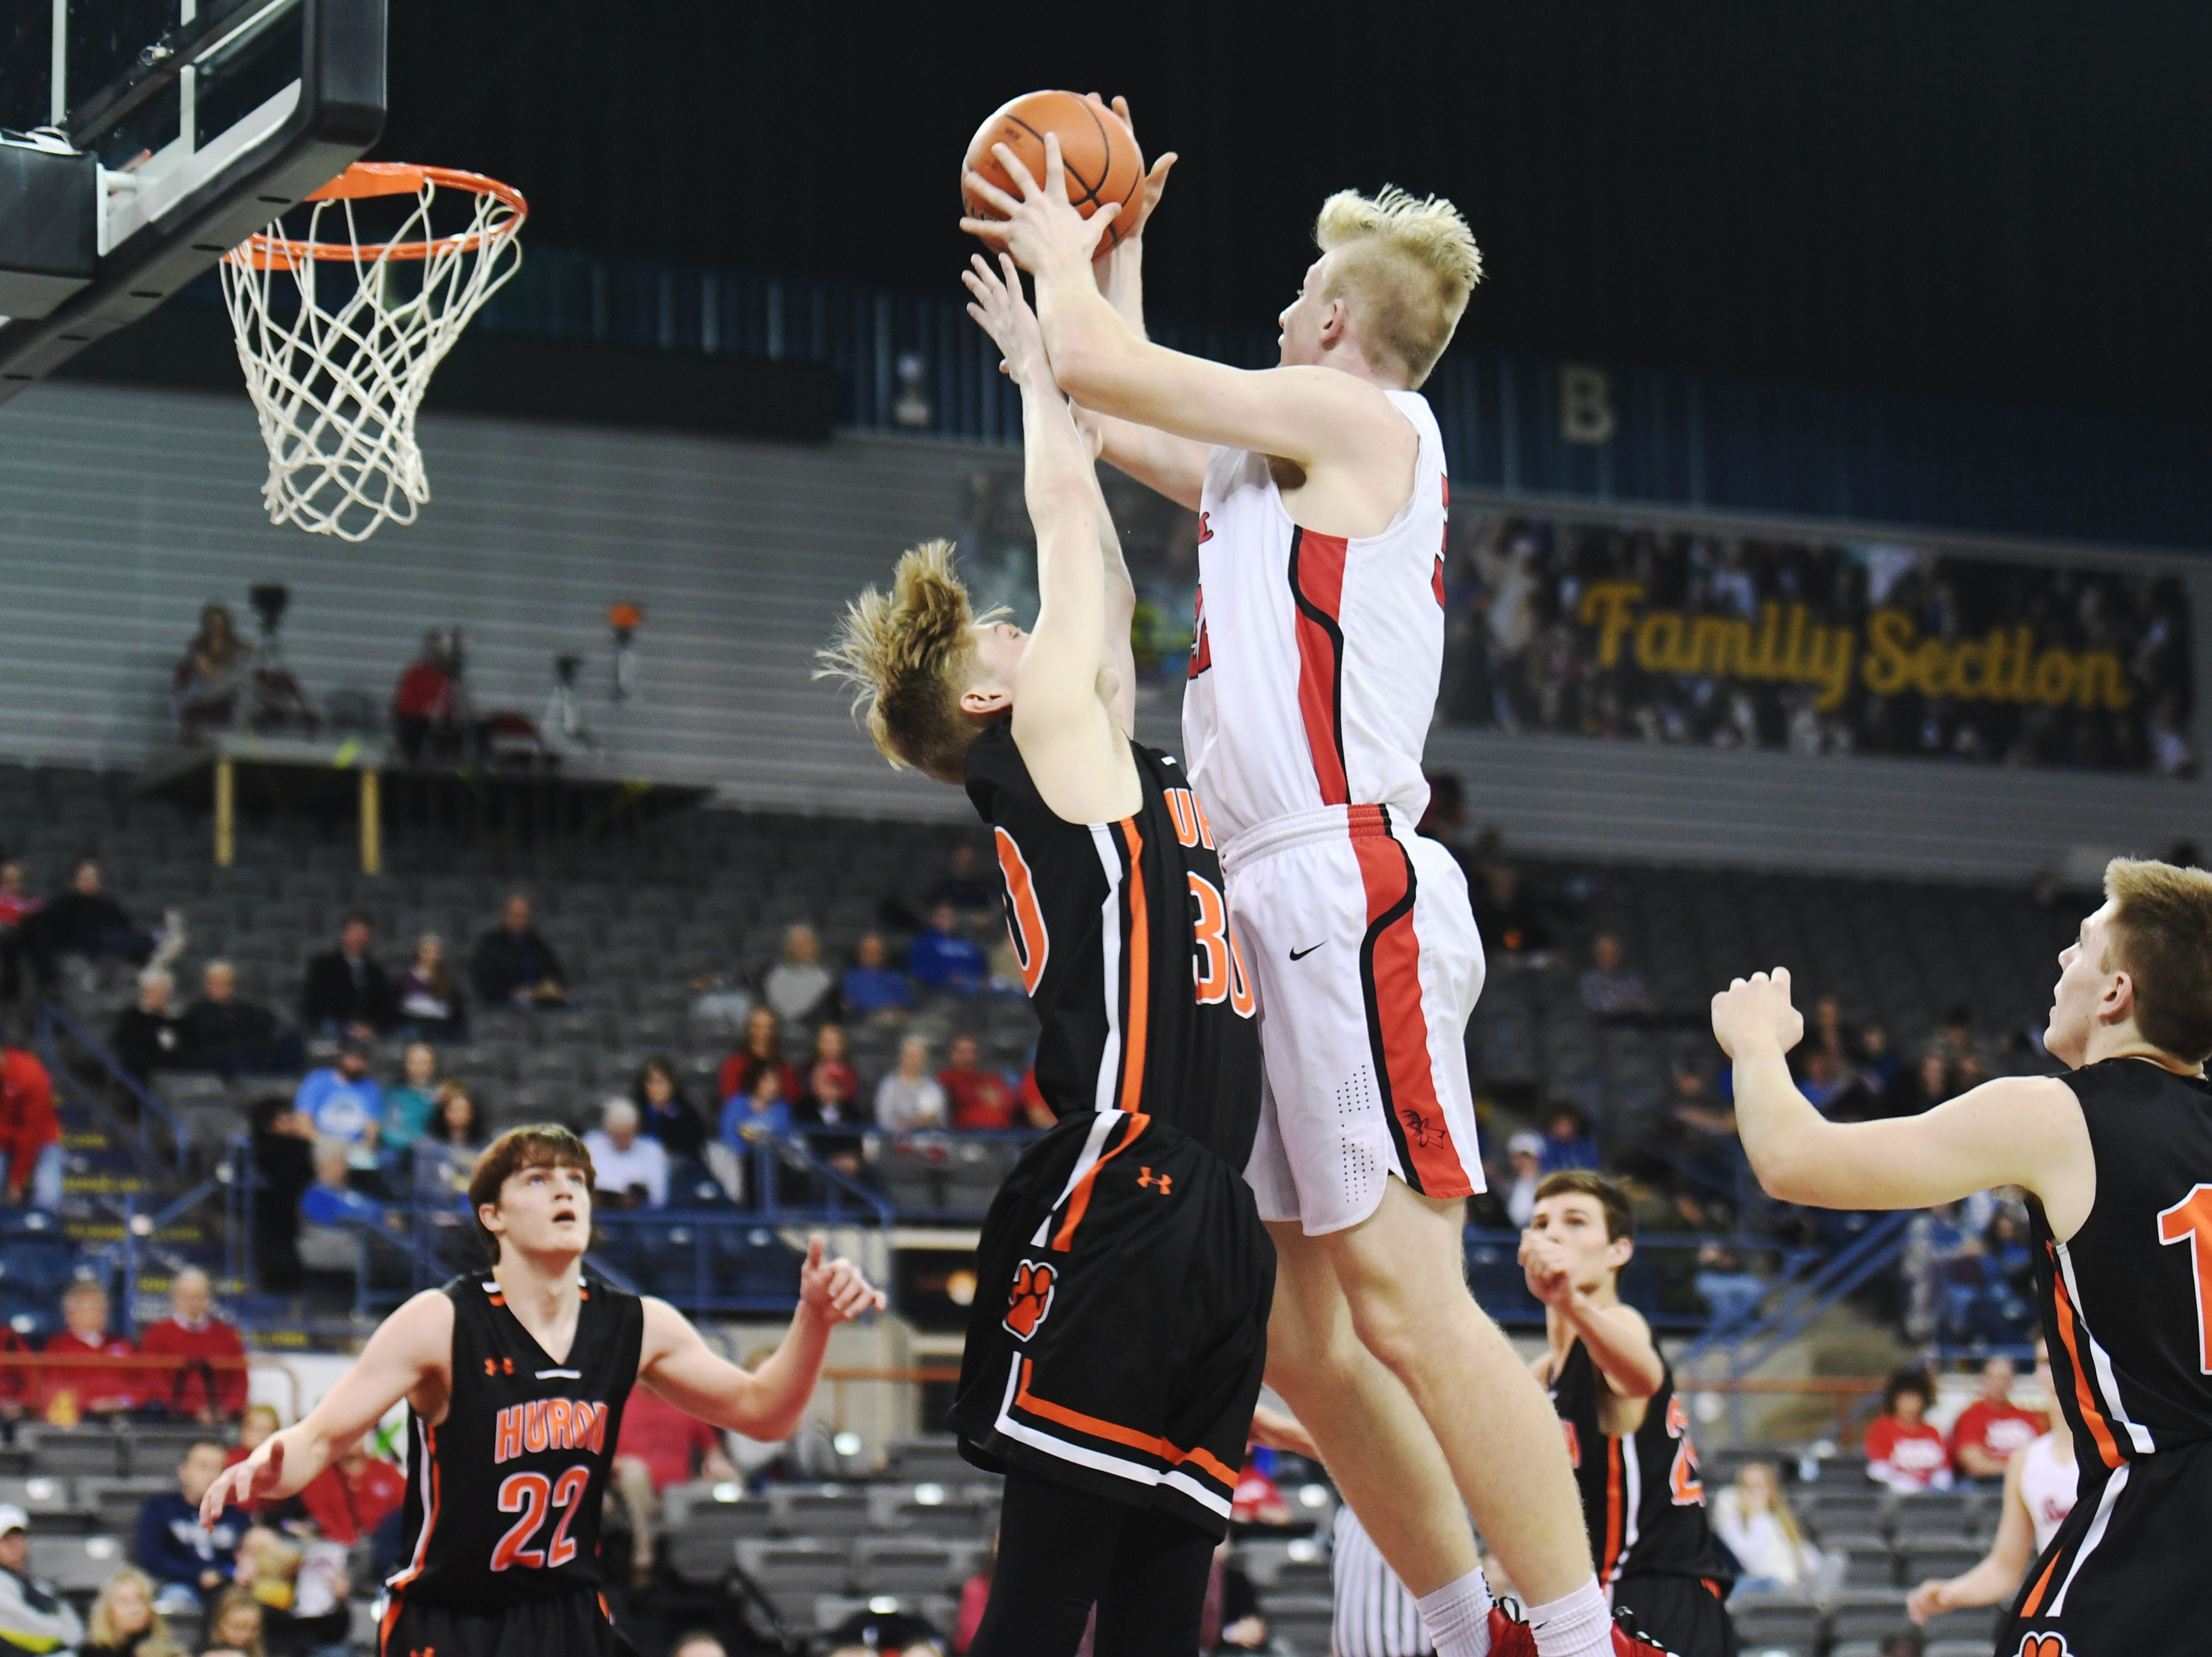 Yankton's Matthew Mors takes a shot against Huron in the Class AA quarterfinals Thursday, March 14, in Rapid City.